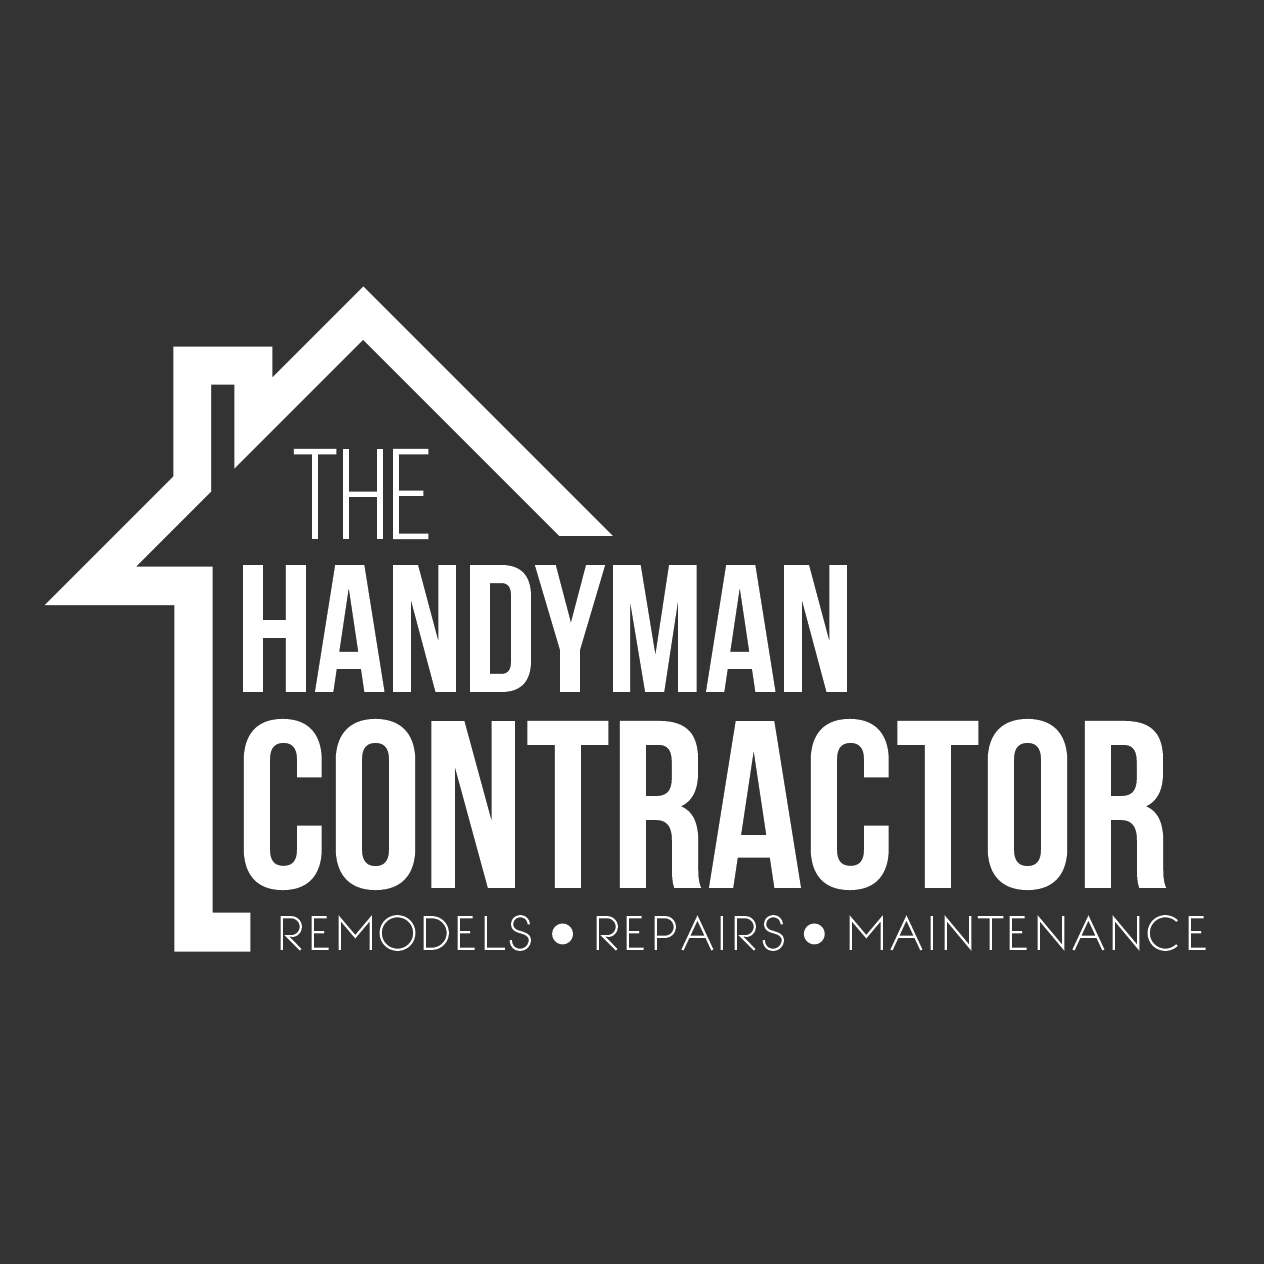 Logo Design For Home Improvement Company. #logo #contractor #design  #graphicdesign # Part 62